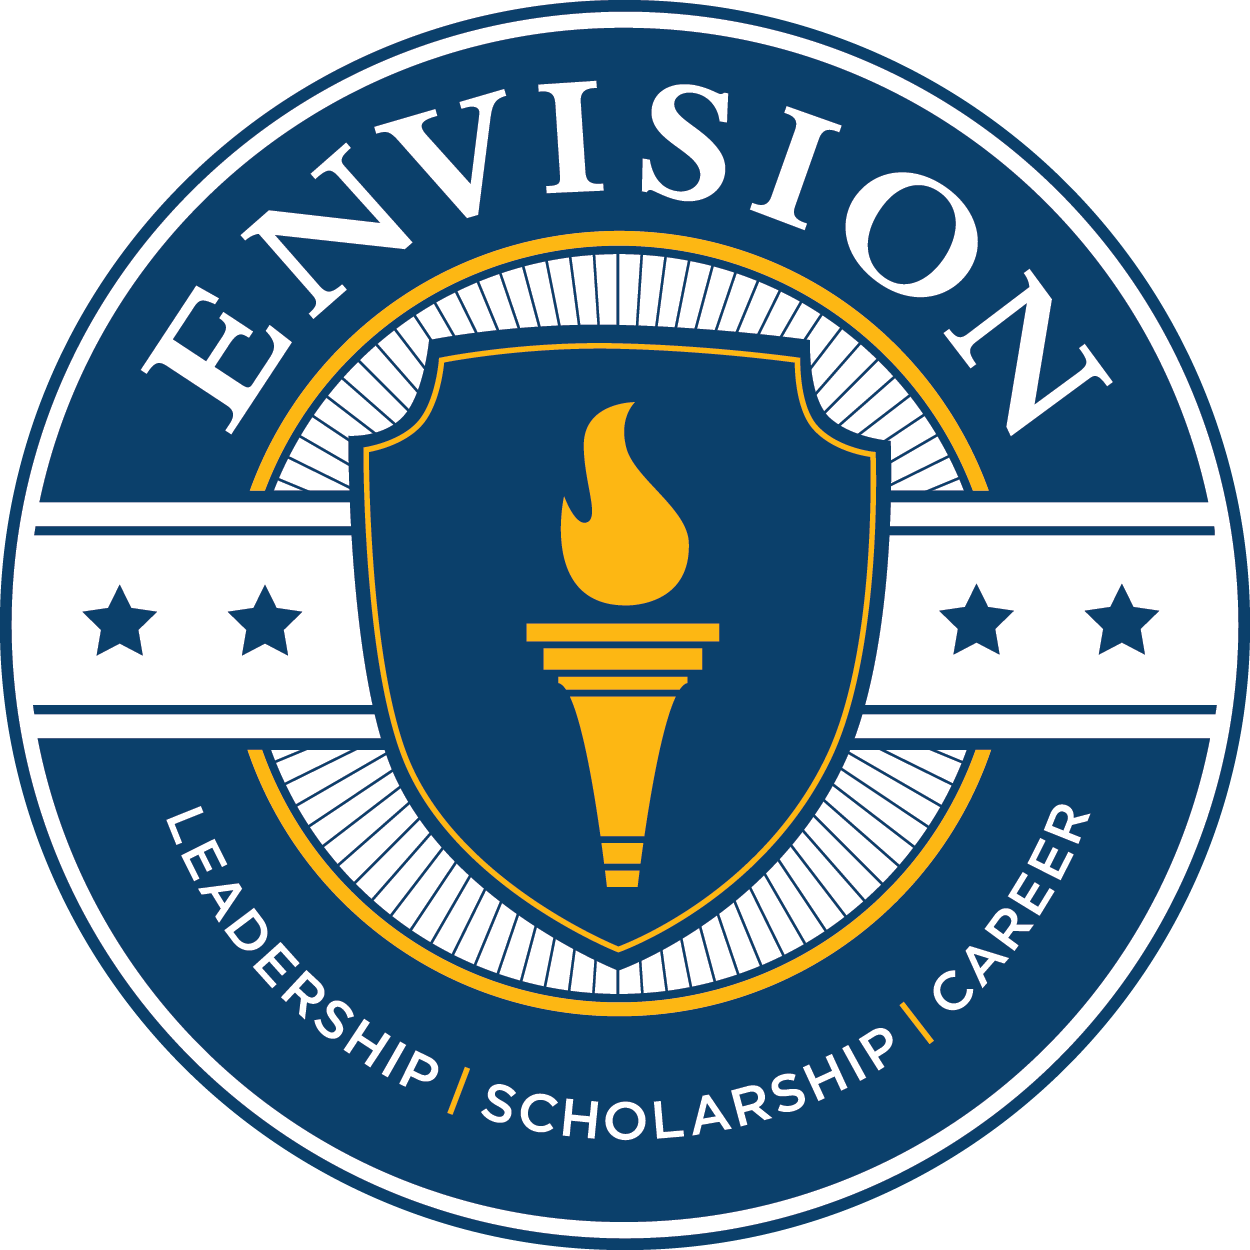 Stem School Program: Students Awarded Scholarships To Attend Envision Career